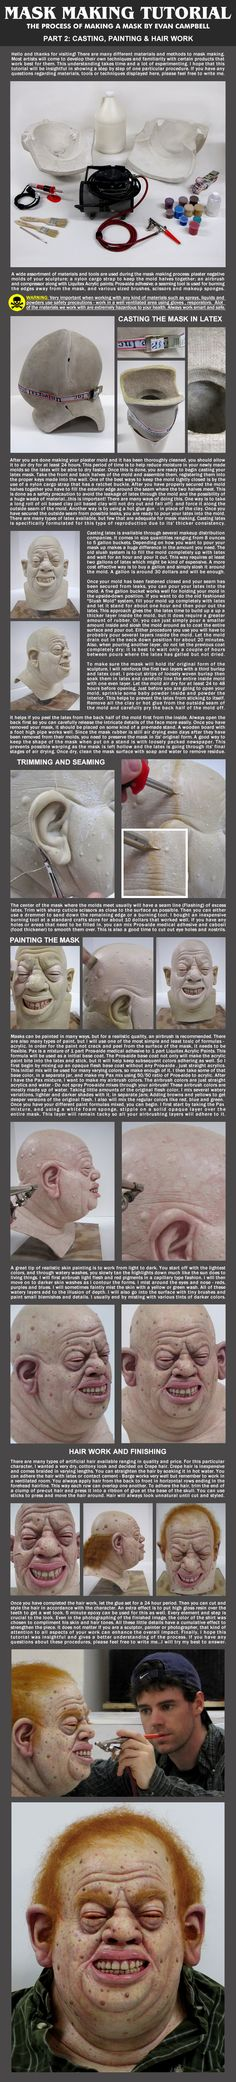 Mask Making Tutorial: Part 2 by EvanCampbell on deviantART